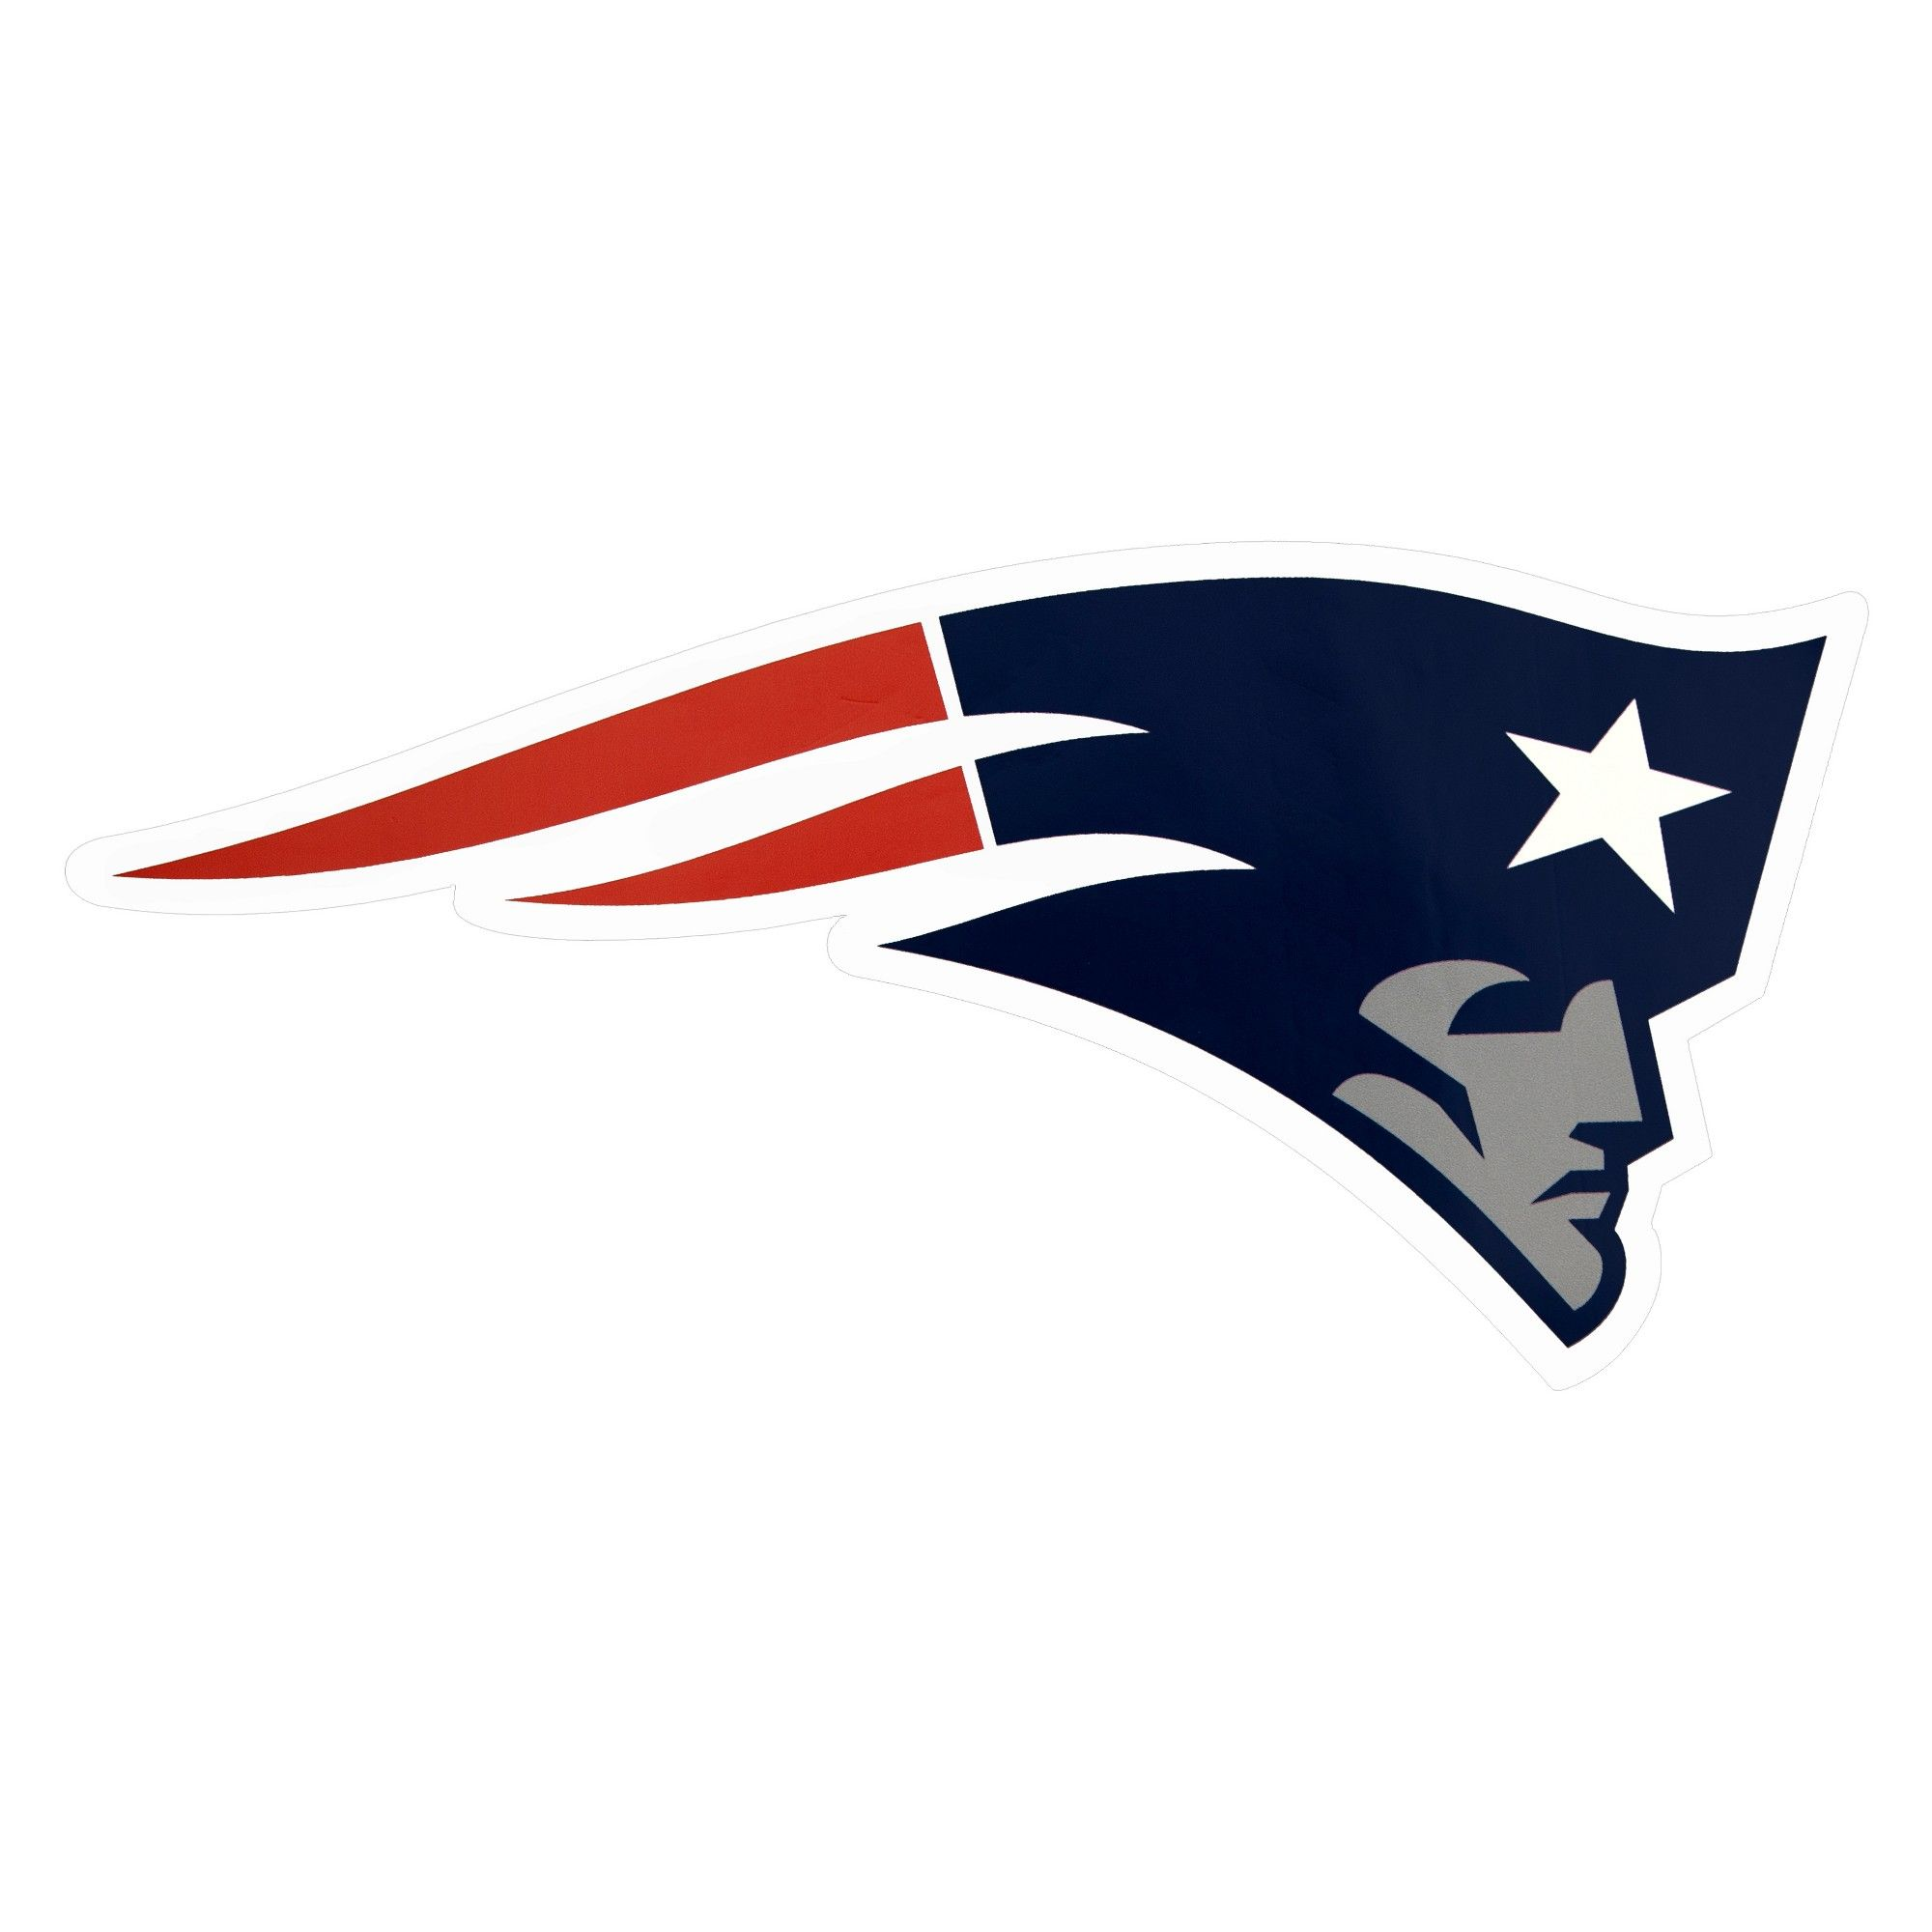 Nfl New England Patriots Large Outdoor Logo Decal New England Patriots Logo Nfl New England Patriots New England Patriots